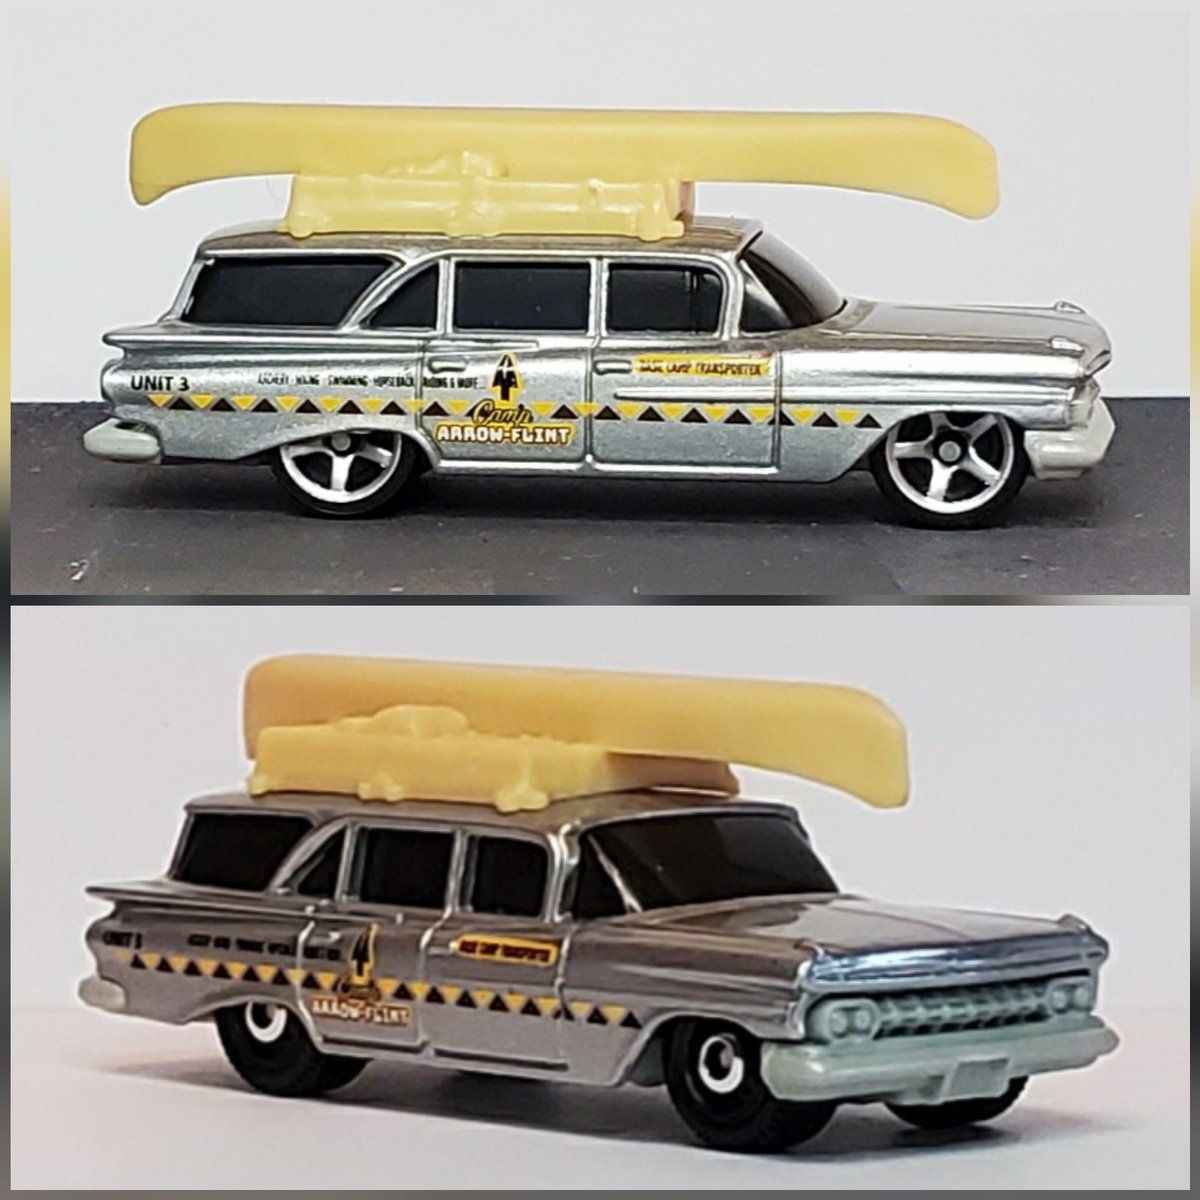 New style five spoke matchbox wheels seem to work pretty well. Off to the stripper jar...pic.twitter.com/JwIwZmO9Qq  by Diecast Garage